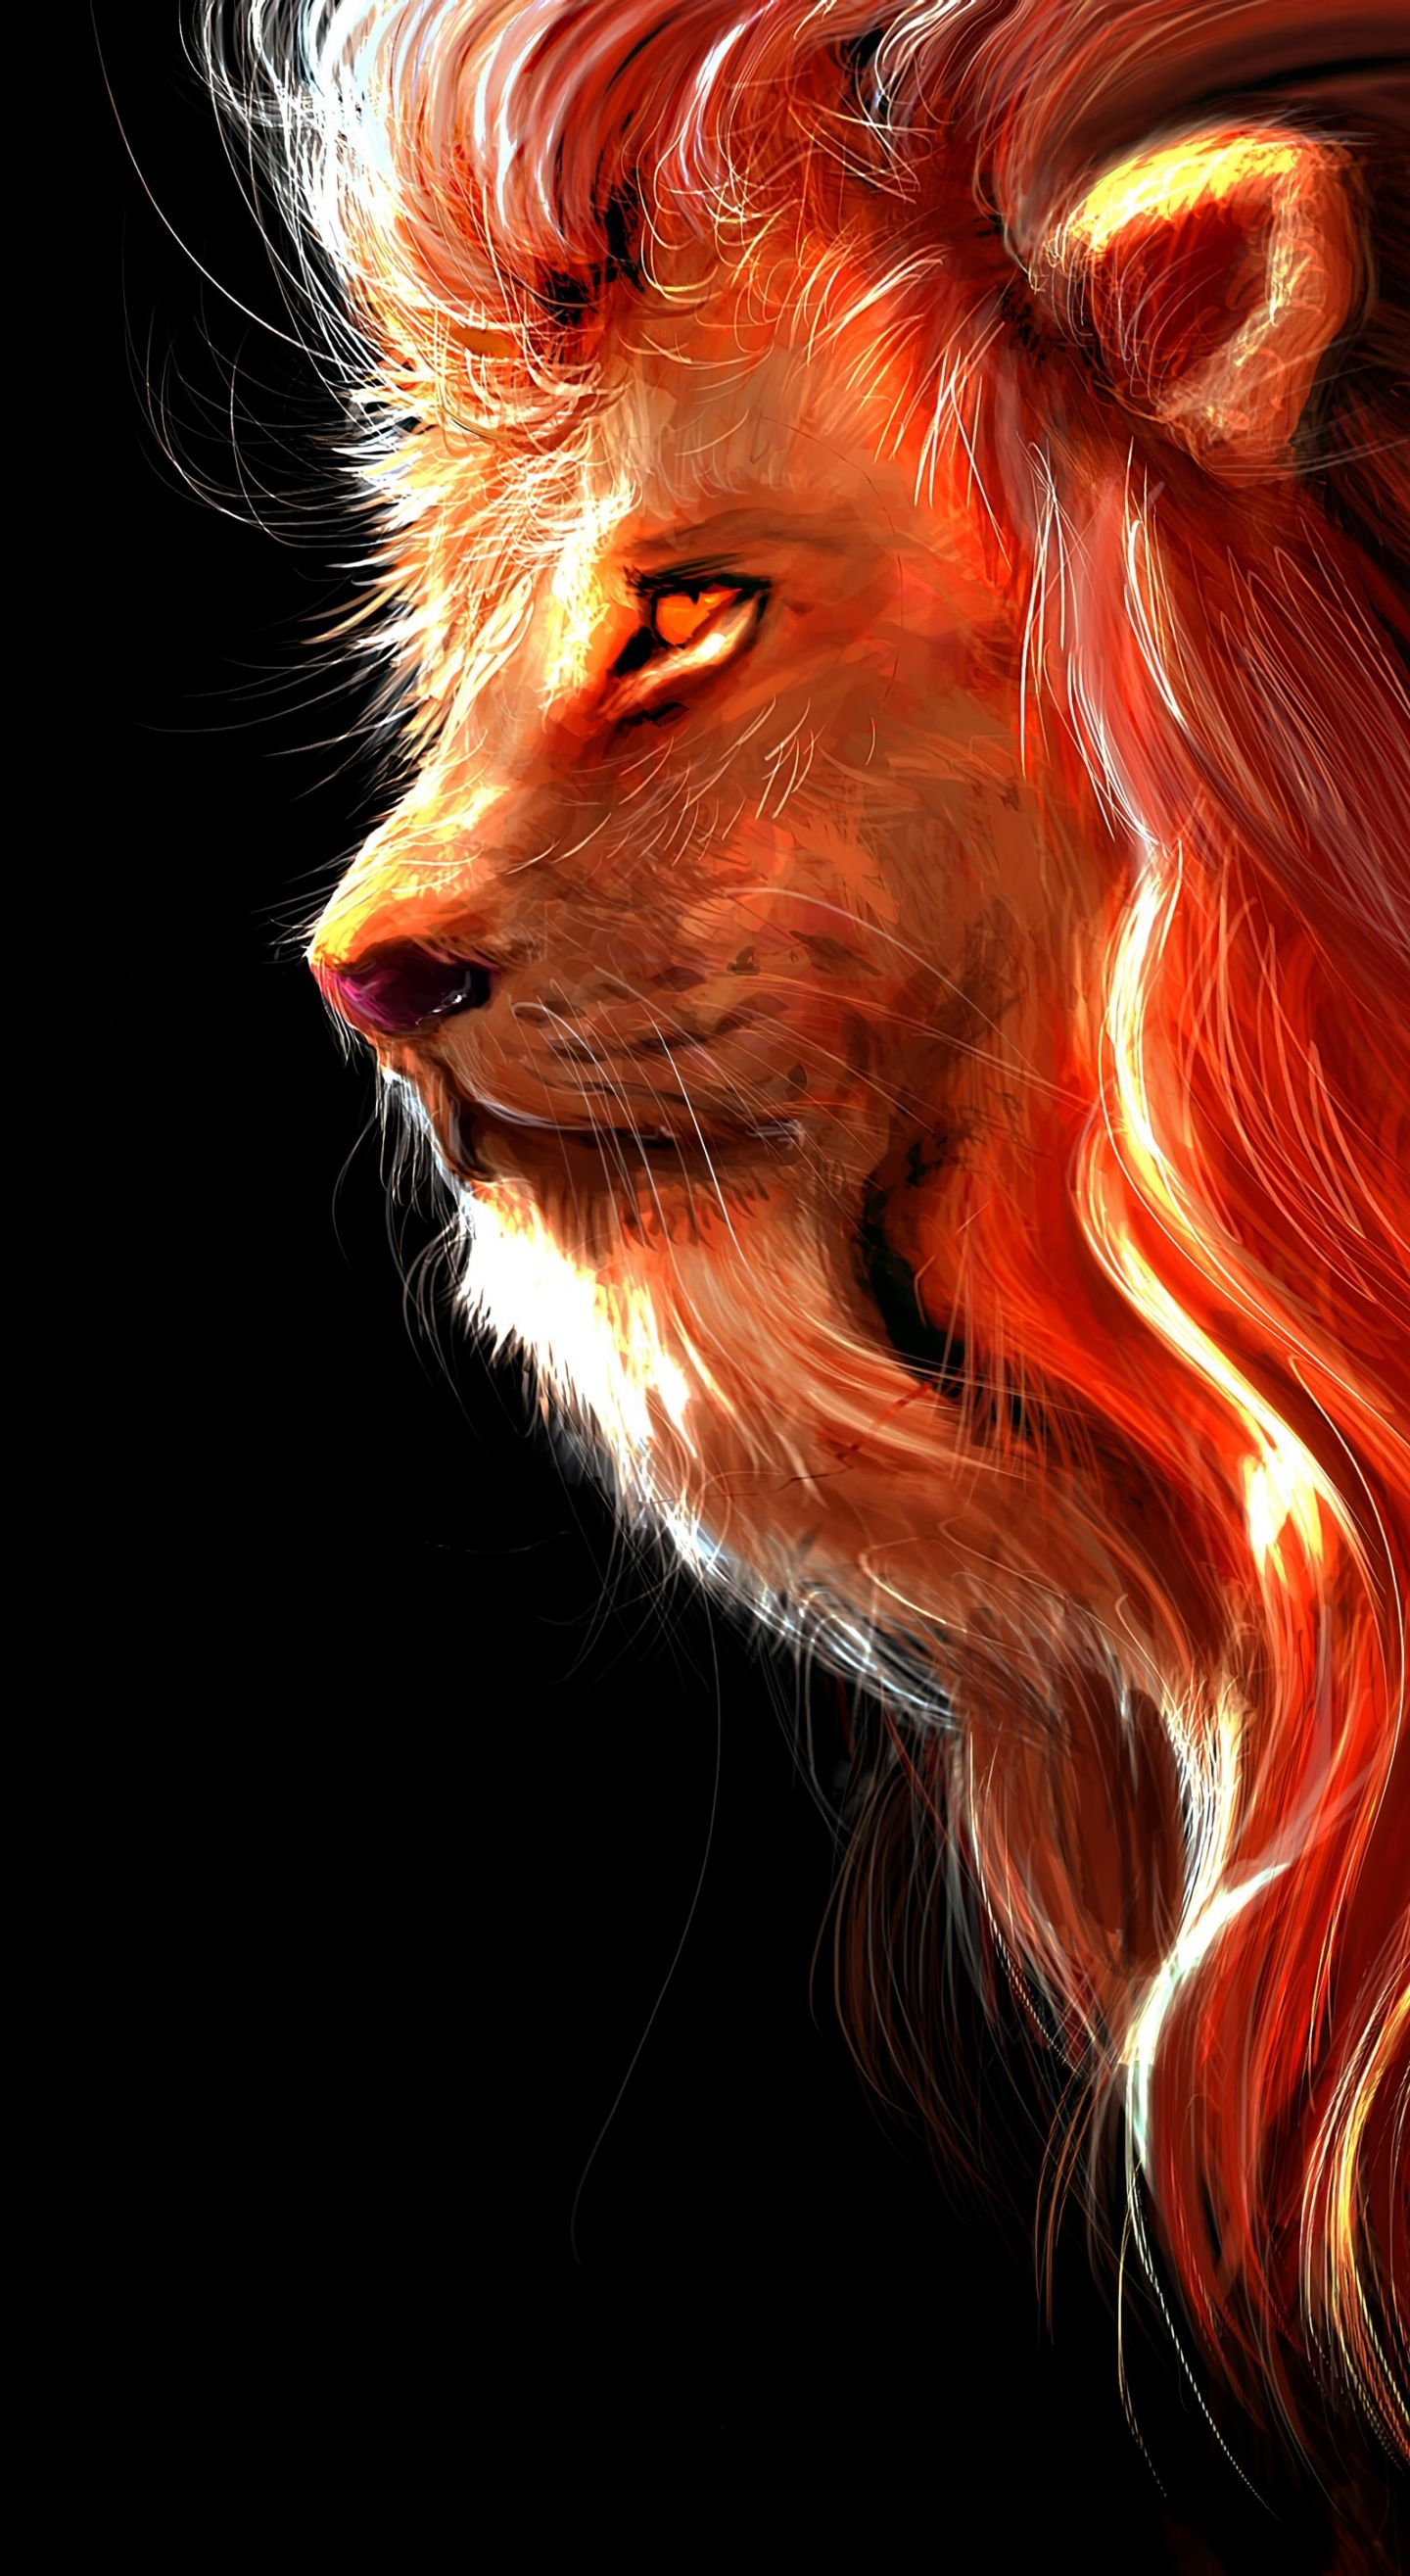 Lion Iphone Backgrounds   KoLPaPer   Awesome HD Wallpapers 1440x2630